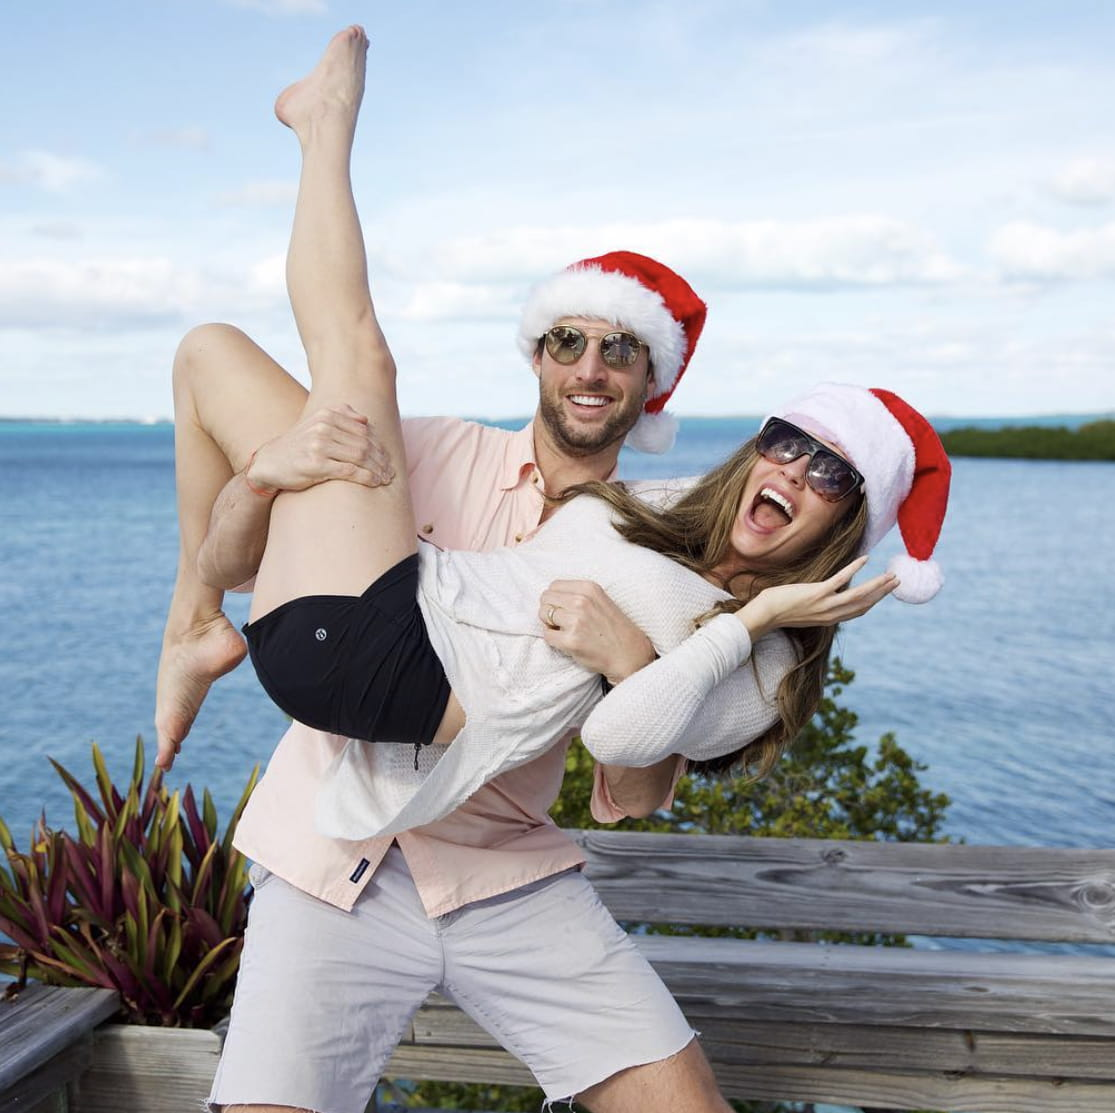 Harper and his wife Jordan celebrate Christmas in the Bahamas.